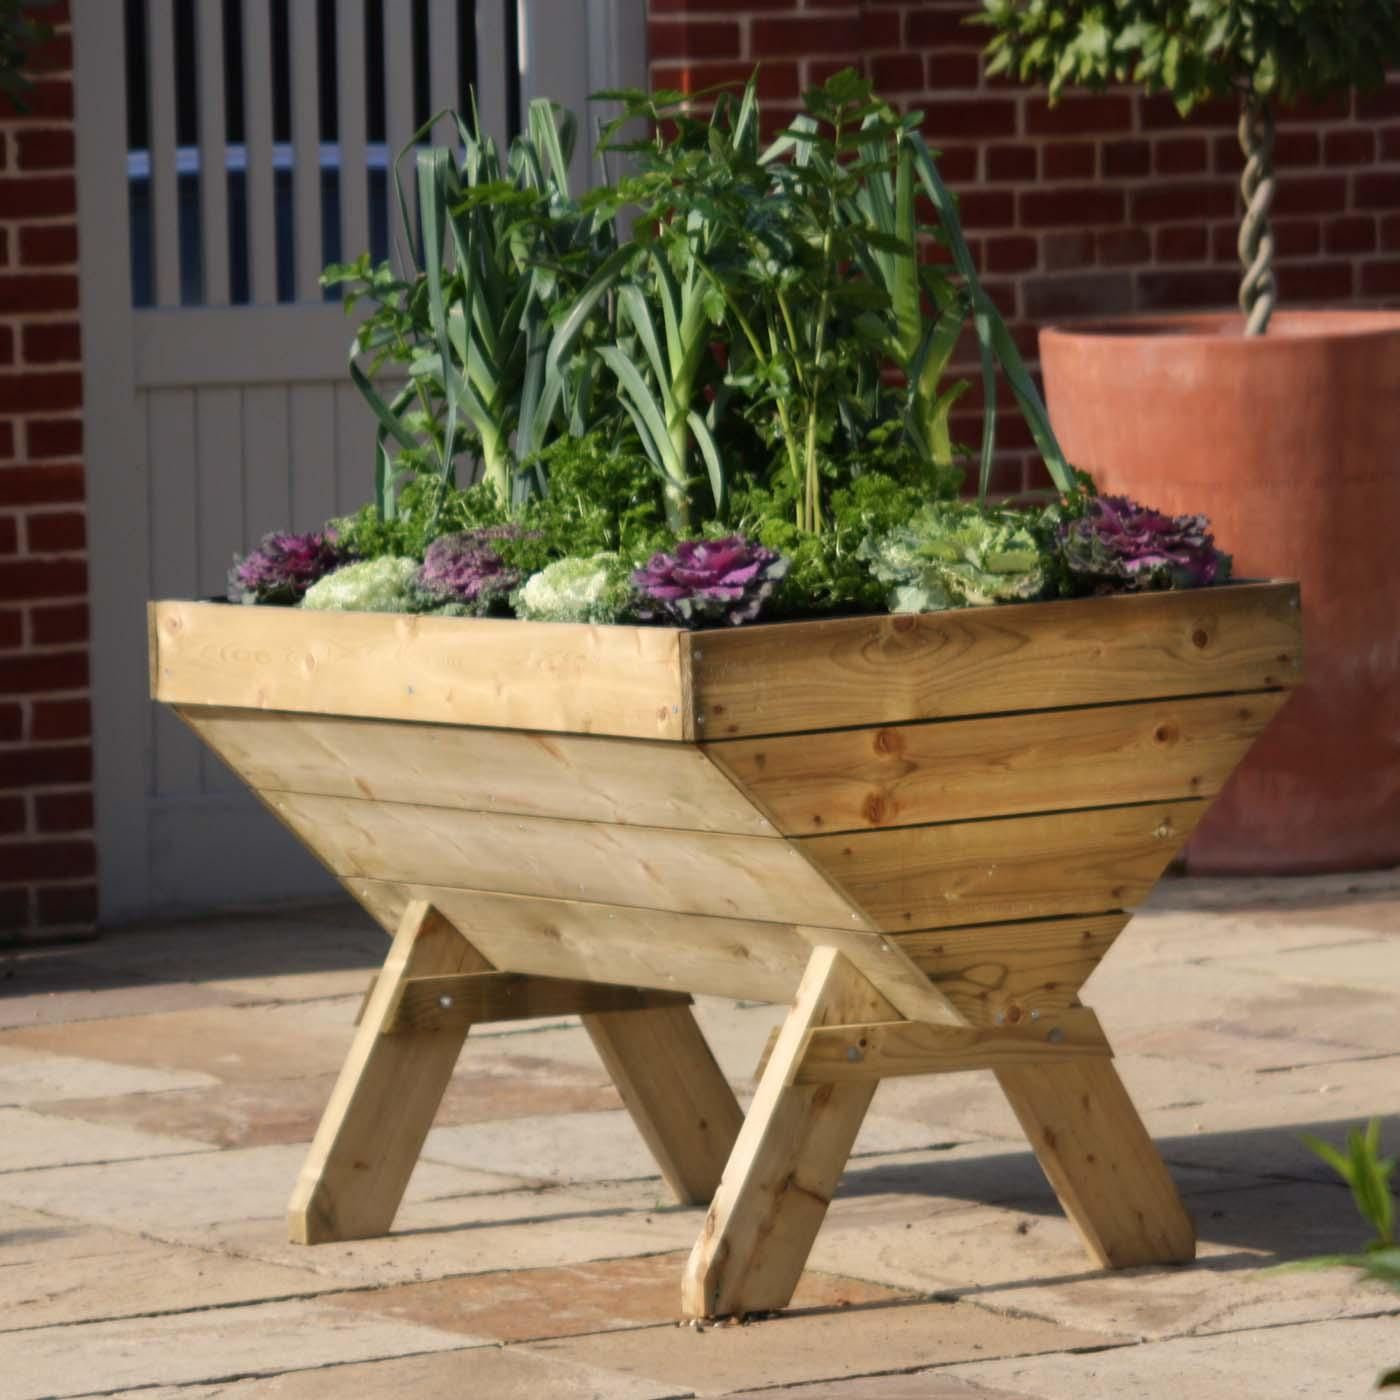 Maxi Manger Trough Planter this would